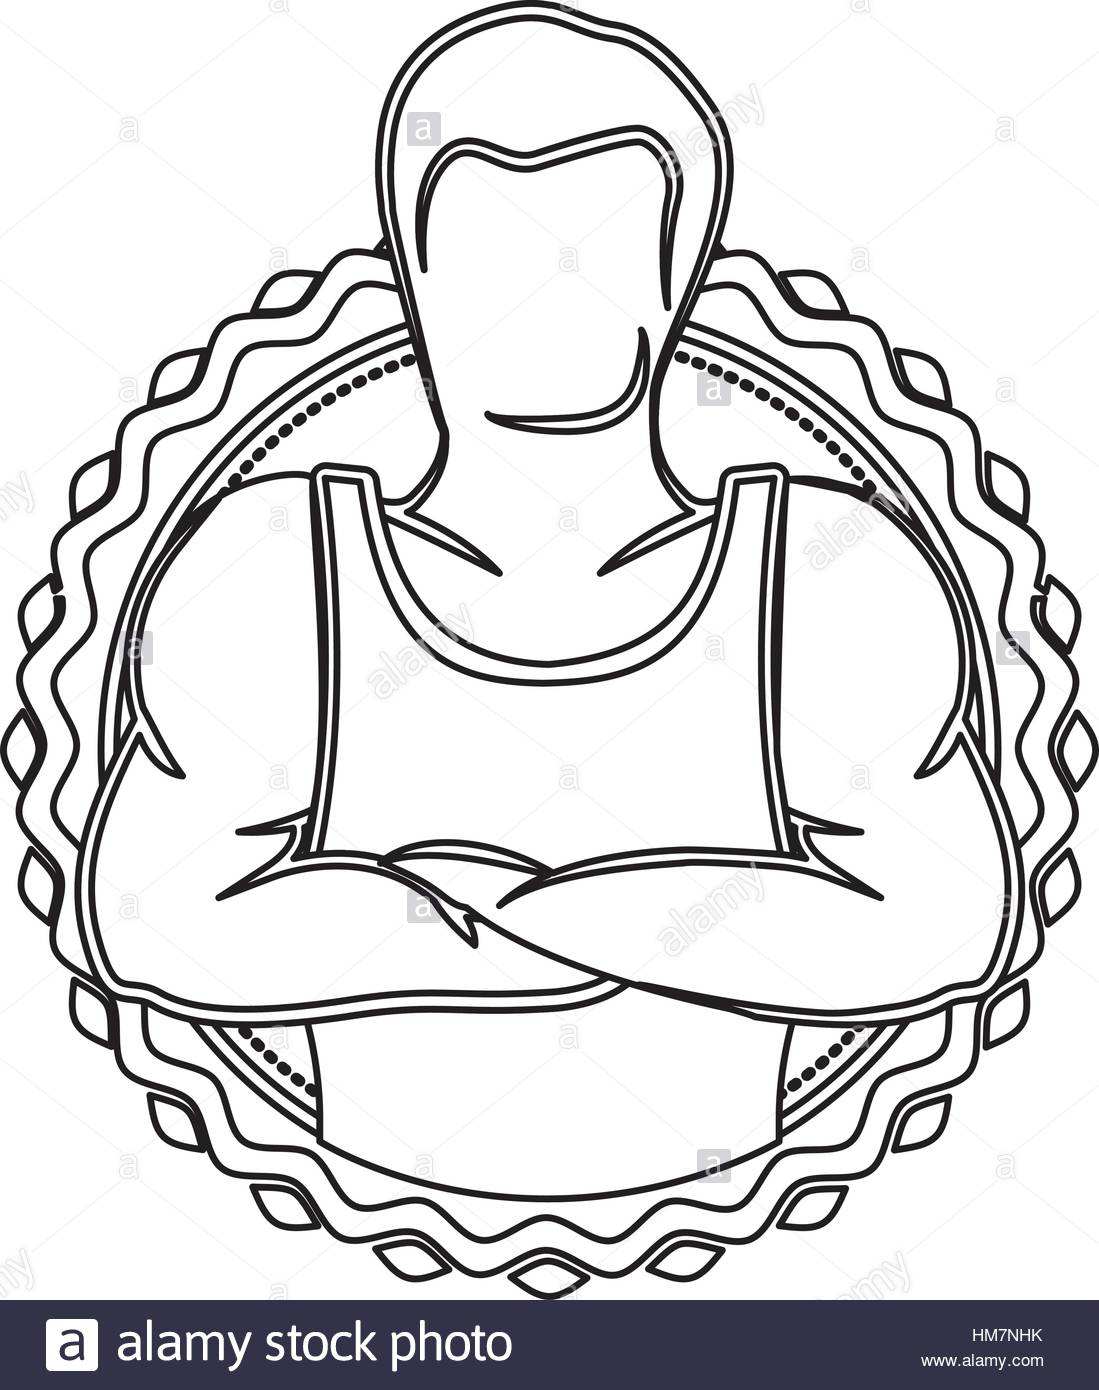 1099x1390 Contour Sticker Border With Muscle Man Crossed Arms Vector Stock